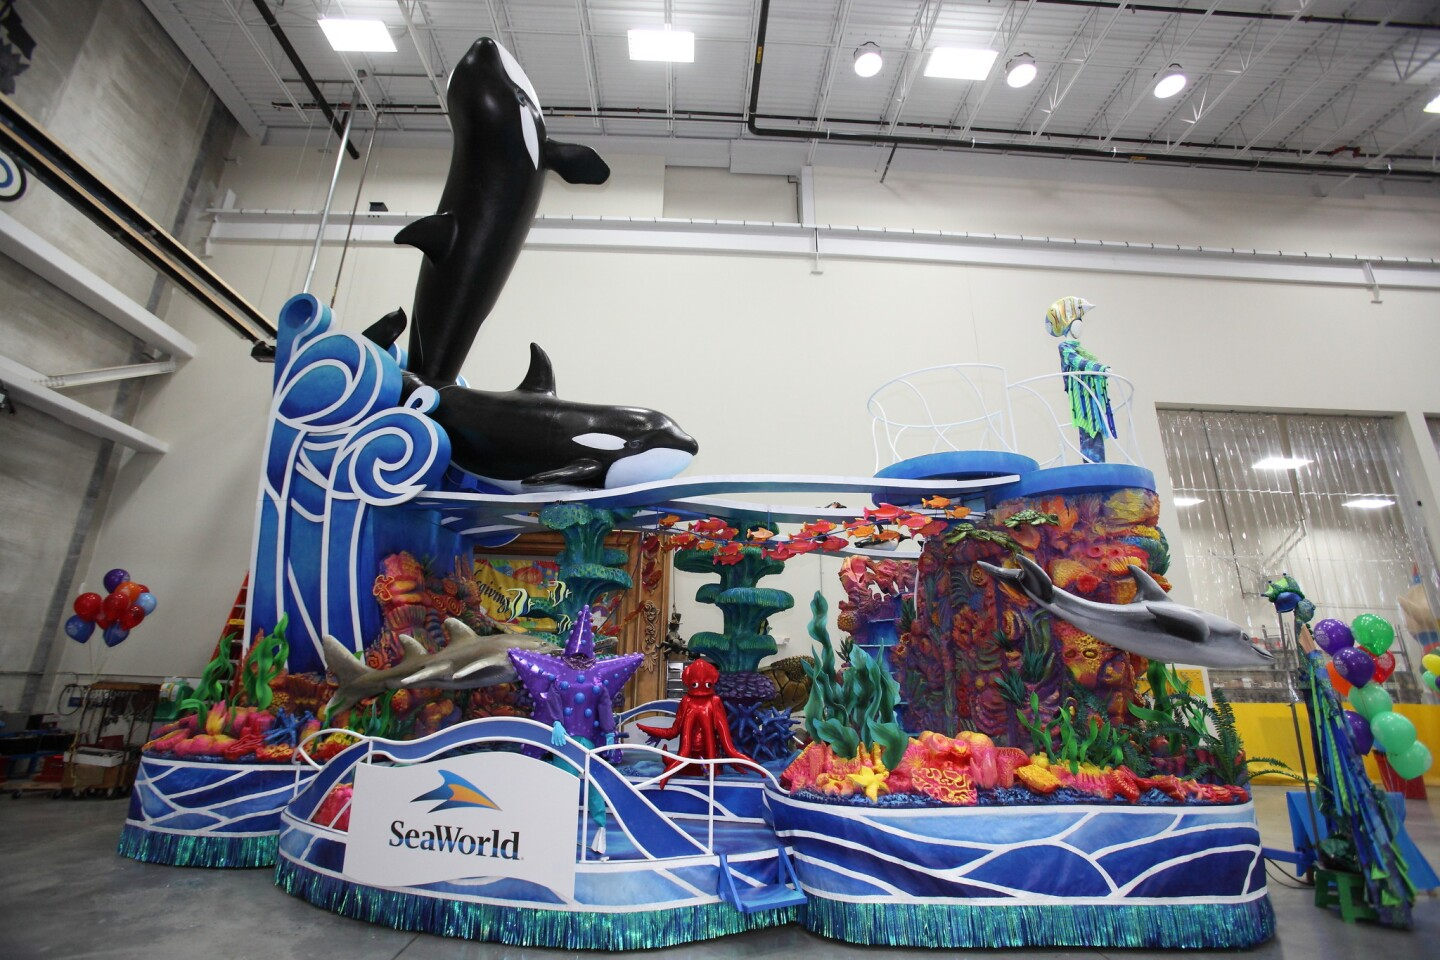 Here's the aforementioned SeaWorld float that's sparking controversy.